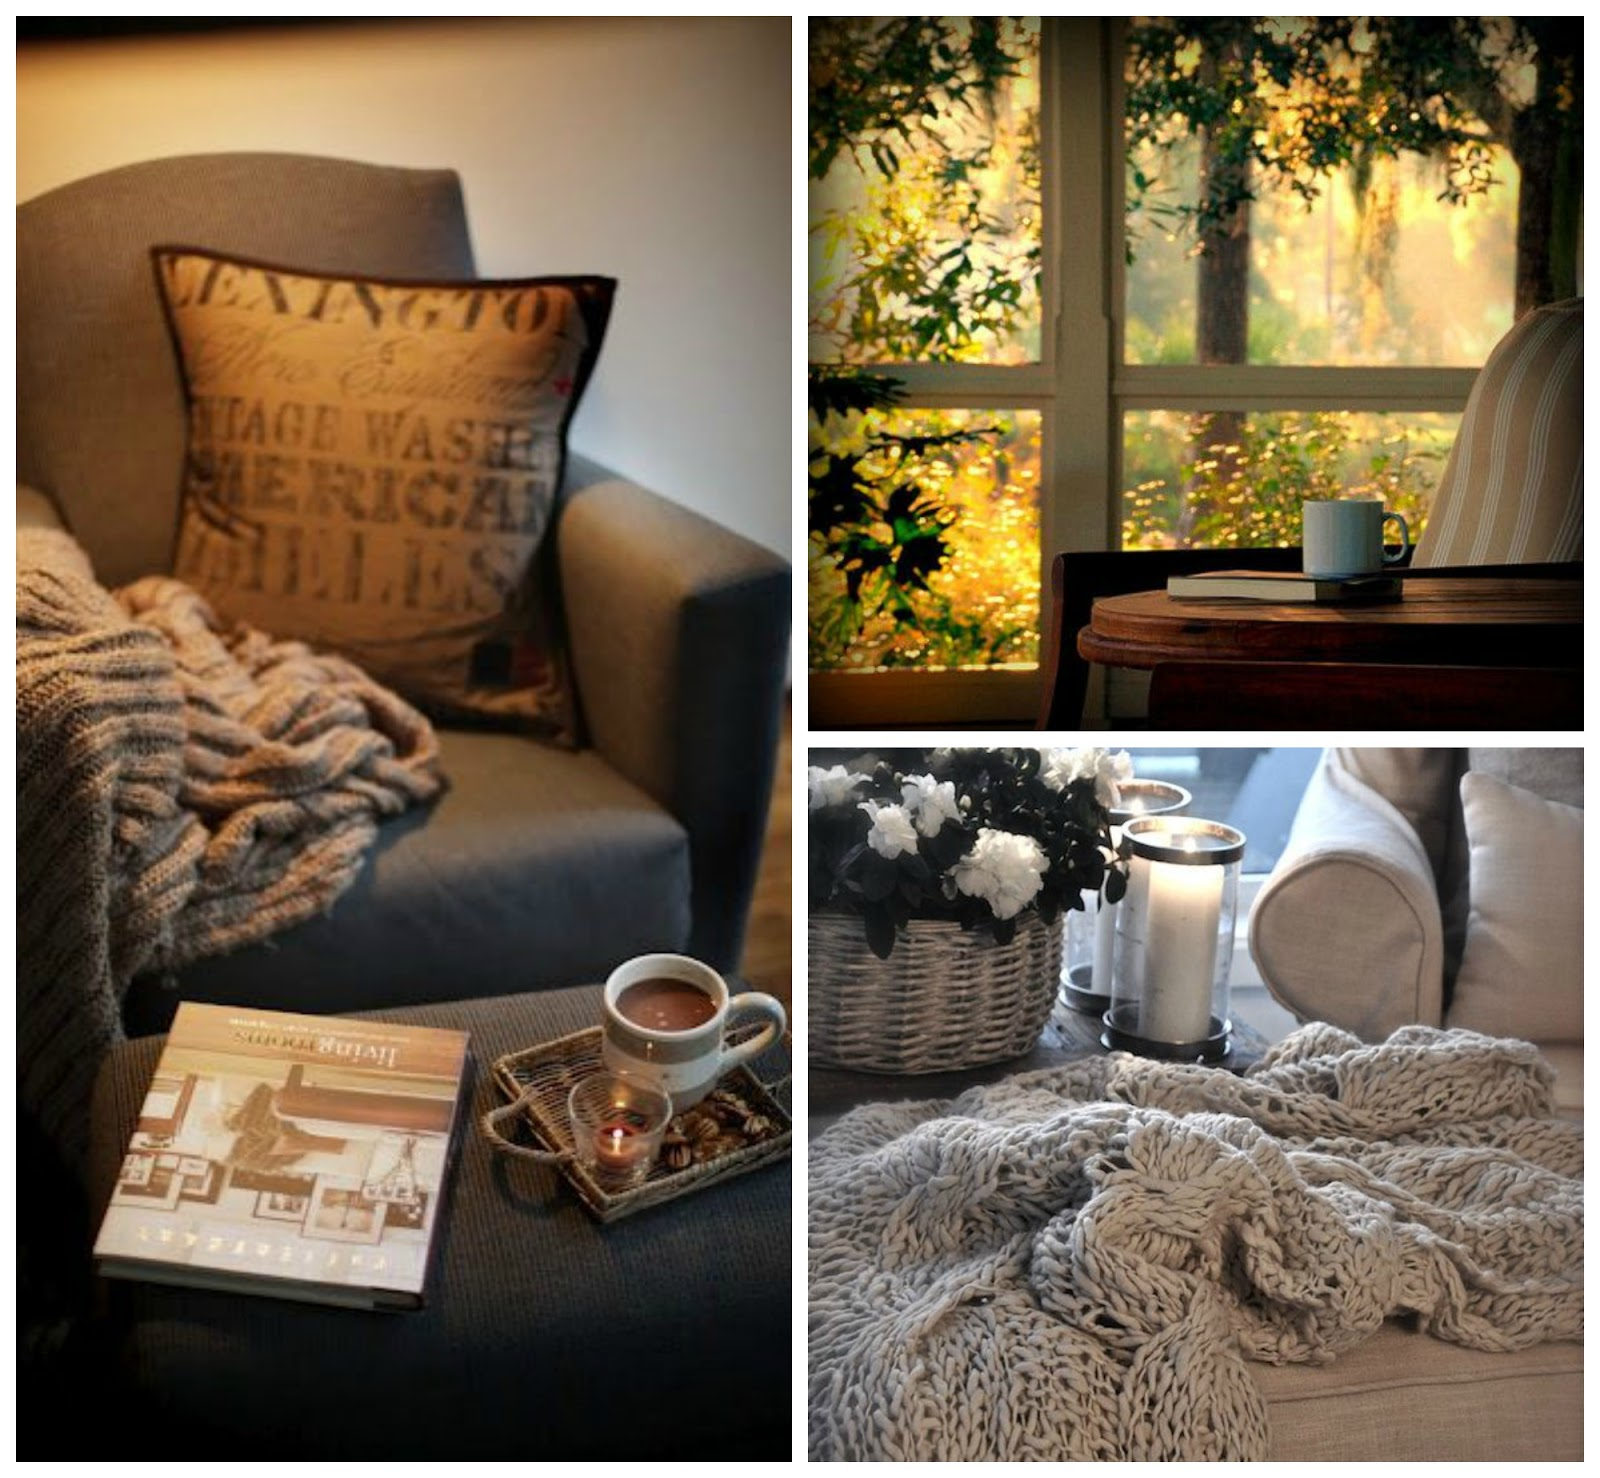 Part 2 How To Create A Cosy Home Hygge